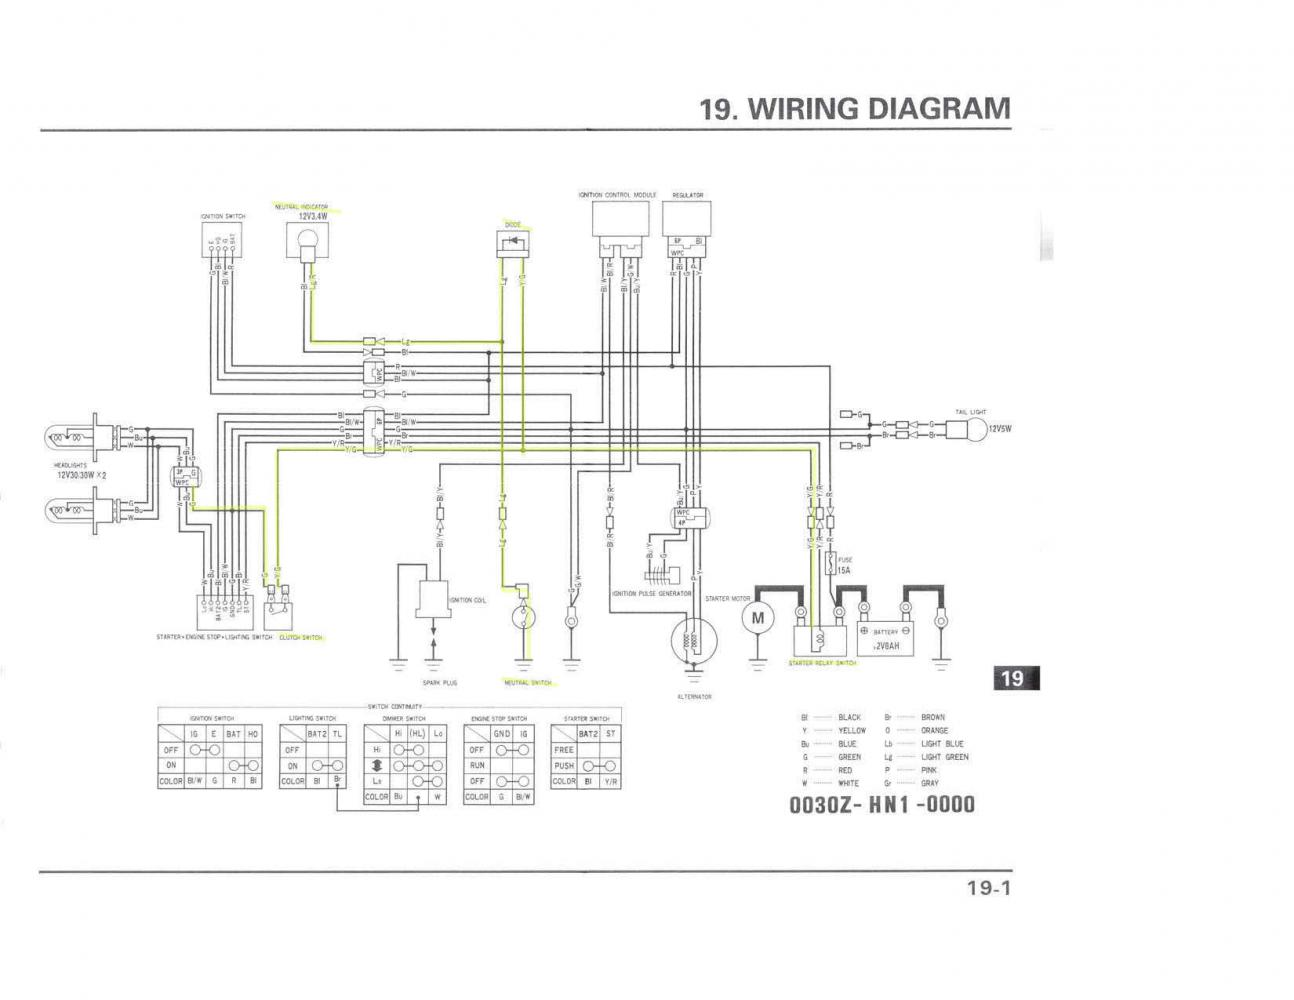 trx 400 wiring diagram